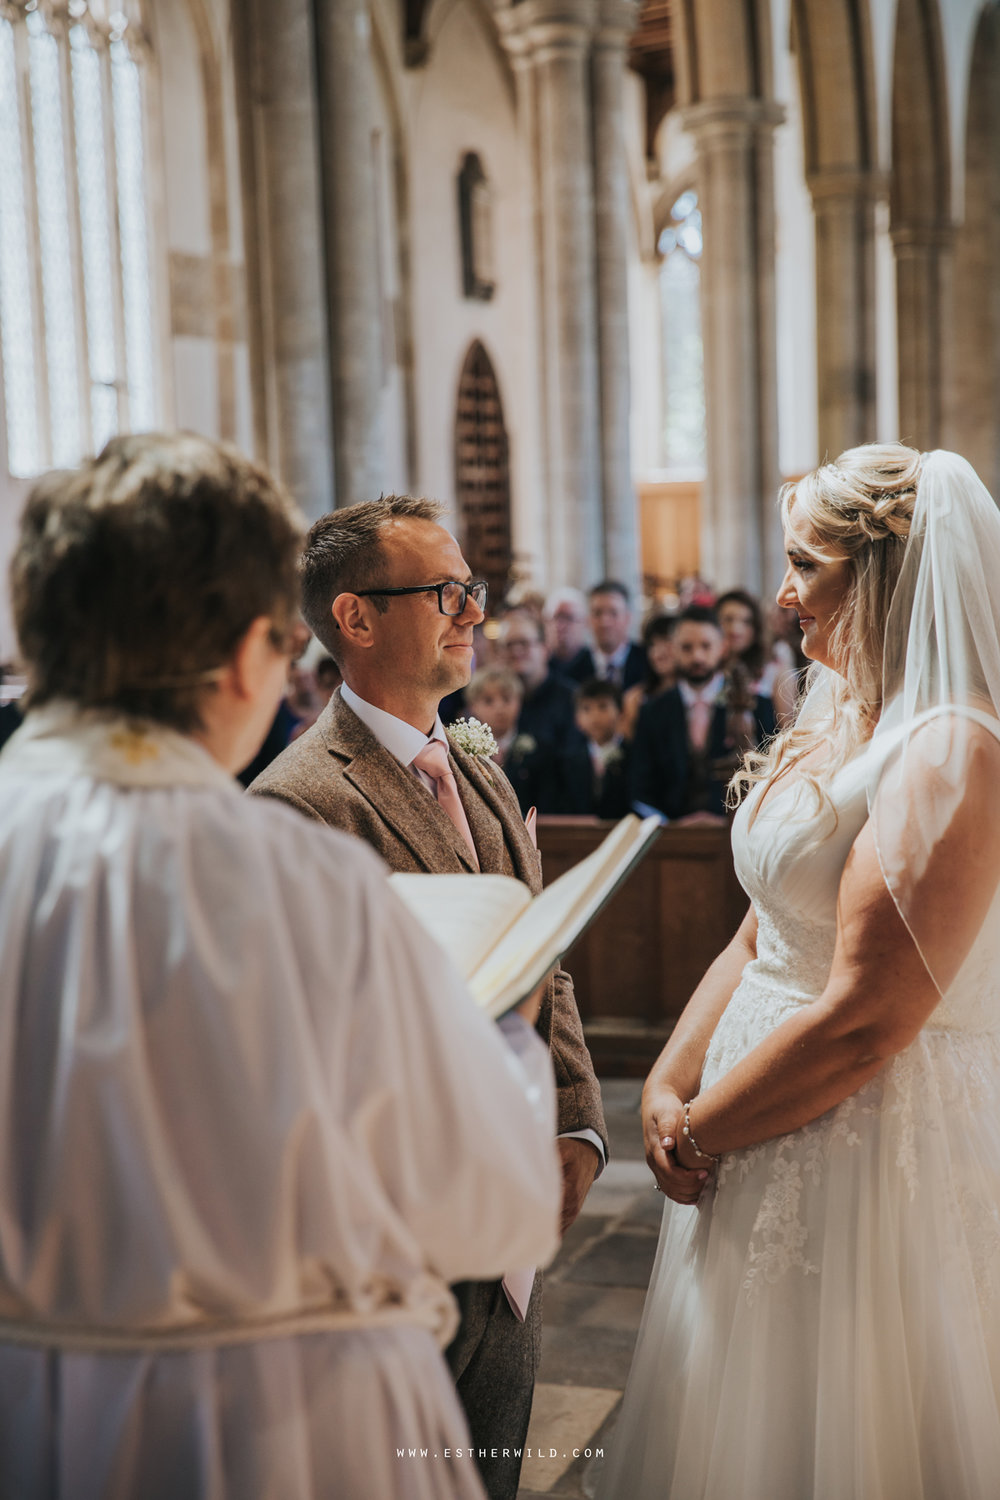 Swaffham_Wedding_Castle_Acre_Norfolk_Esther_Wild_Photographer_Wedding_Photography_3R8A0700.jpg